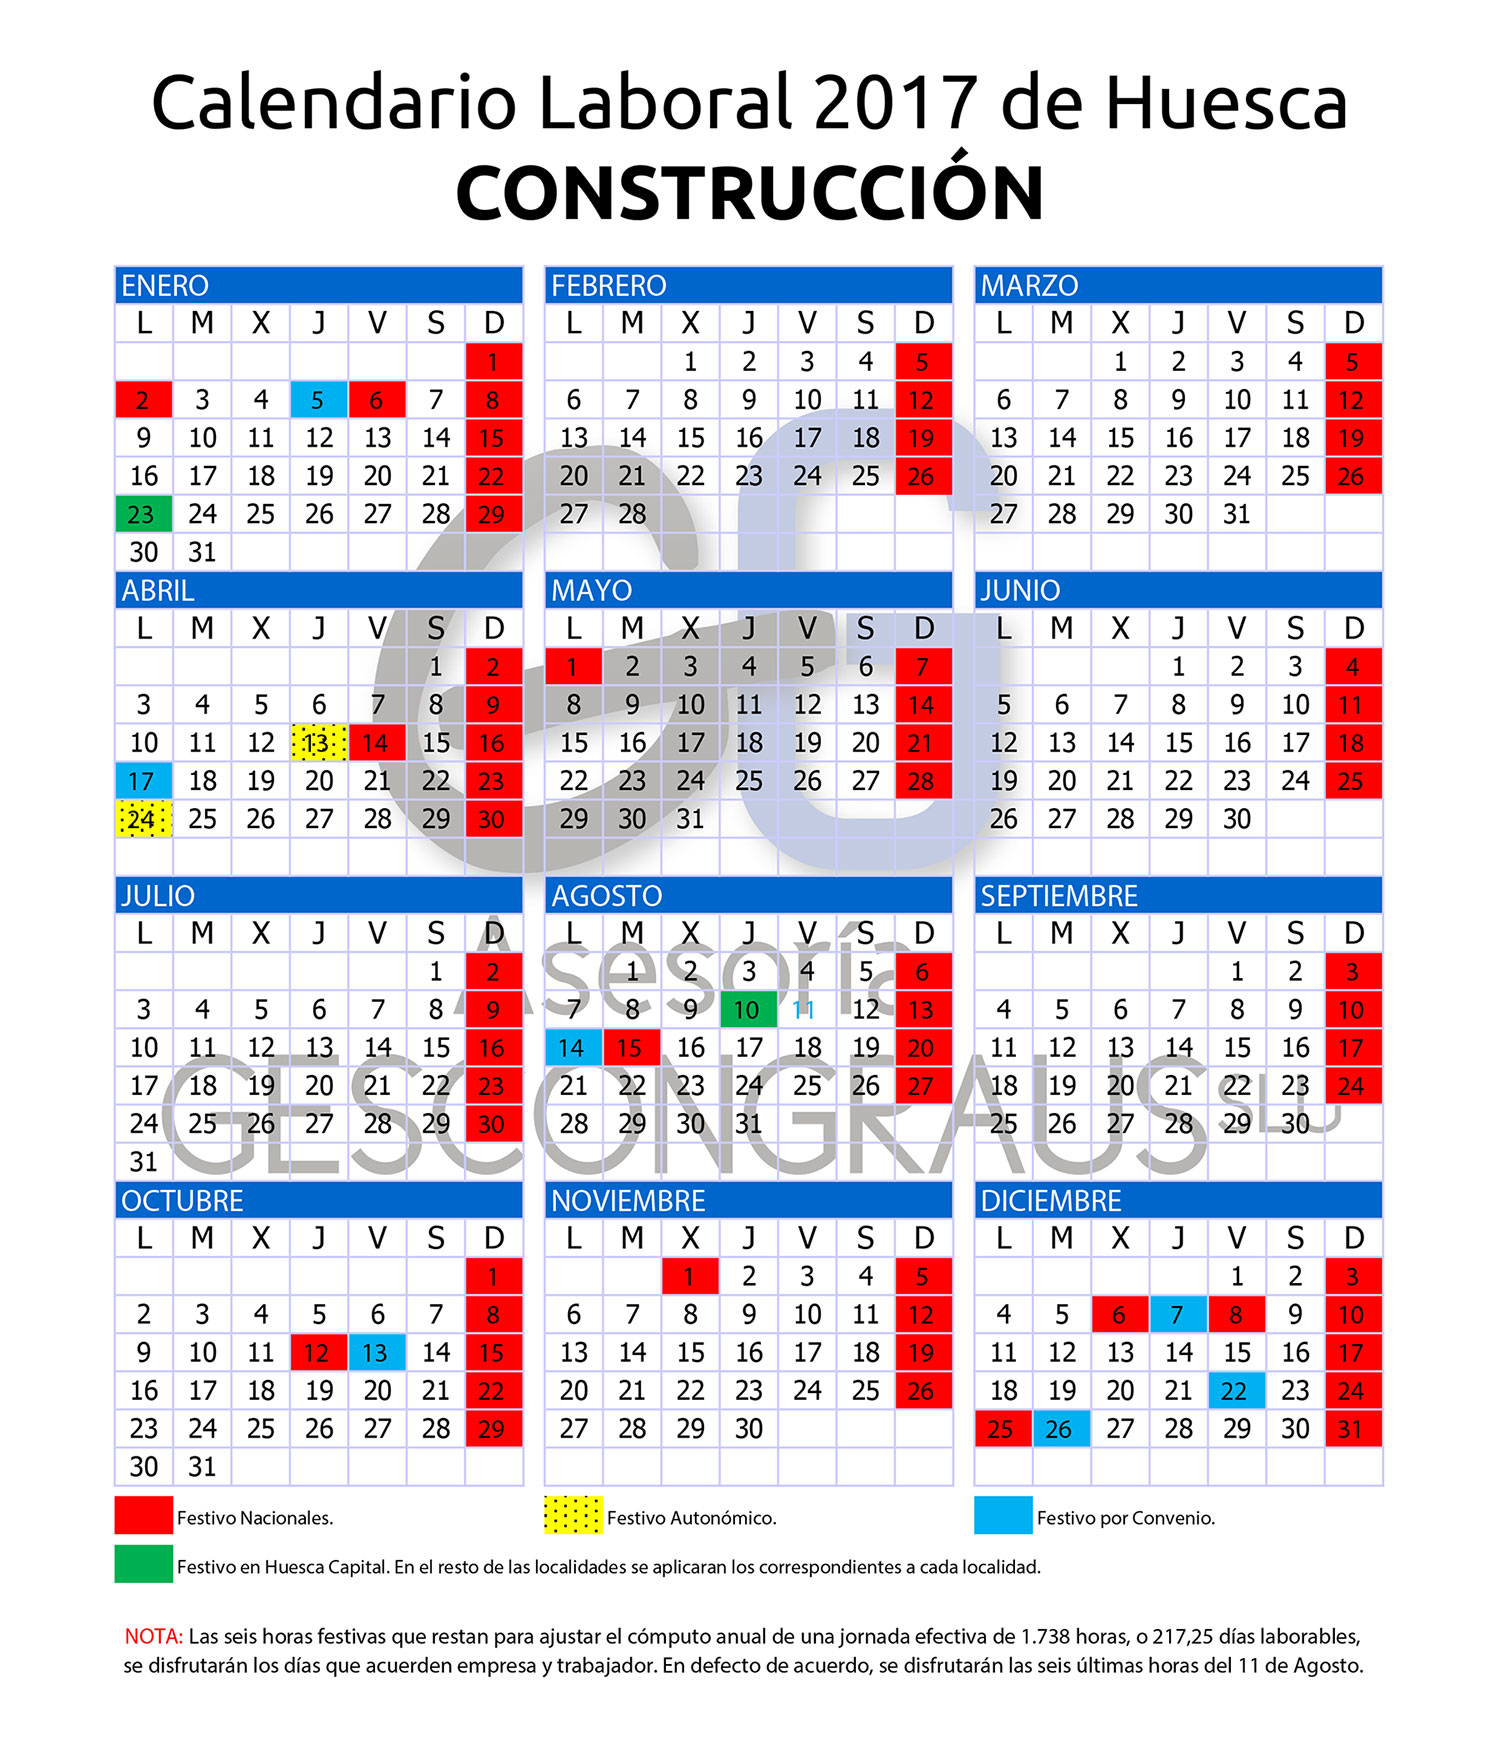 calendario_laboral_construccion02_2017_de_huesca